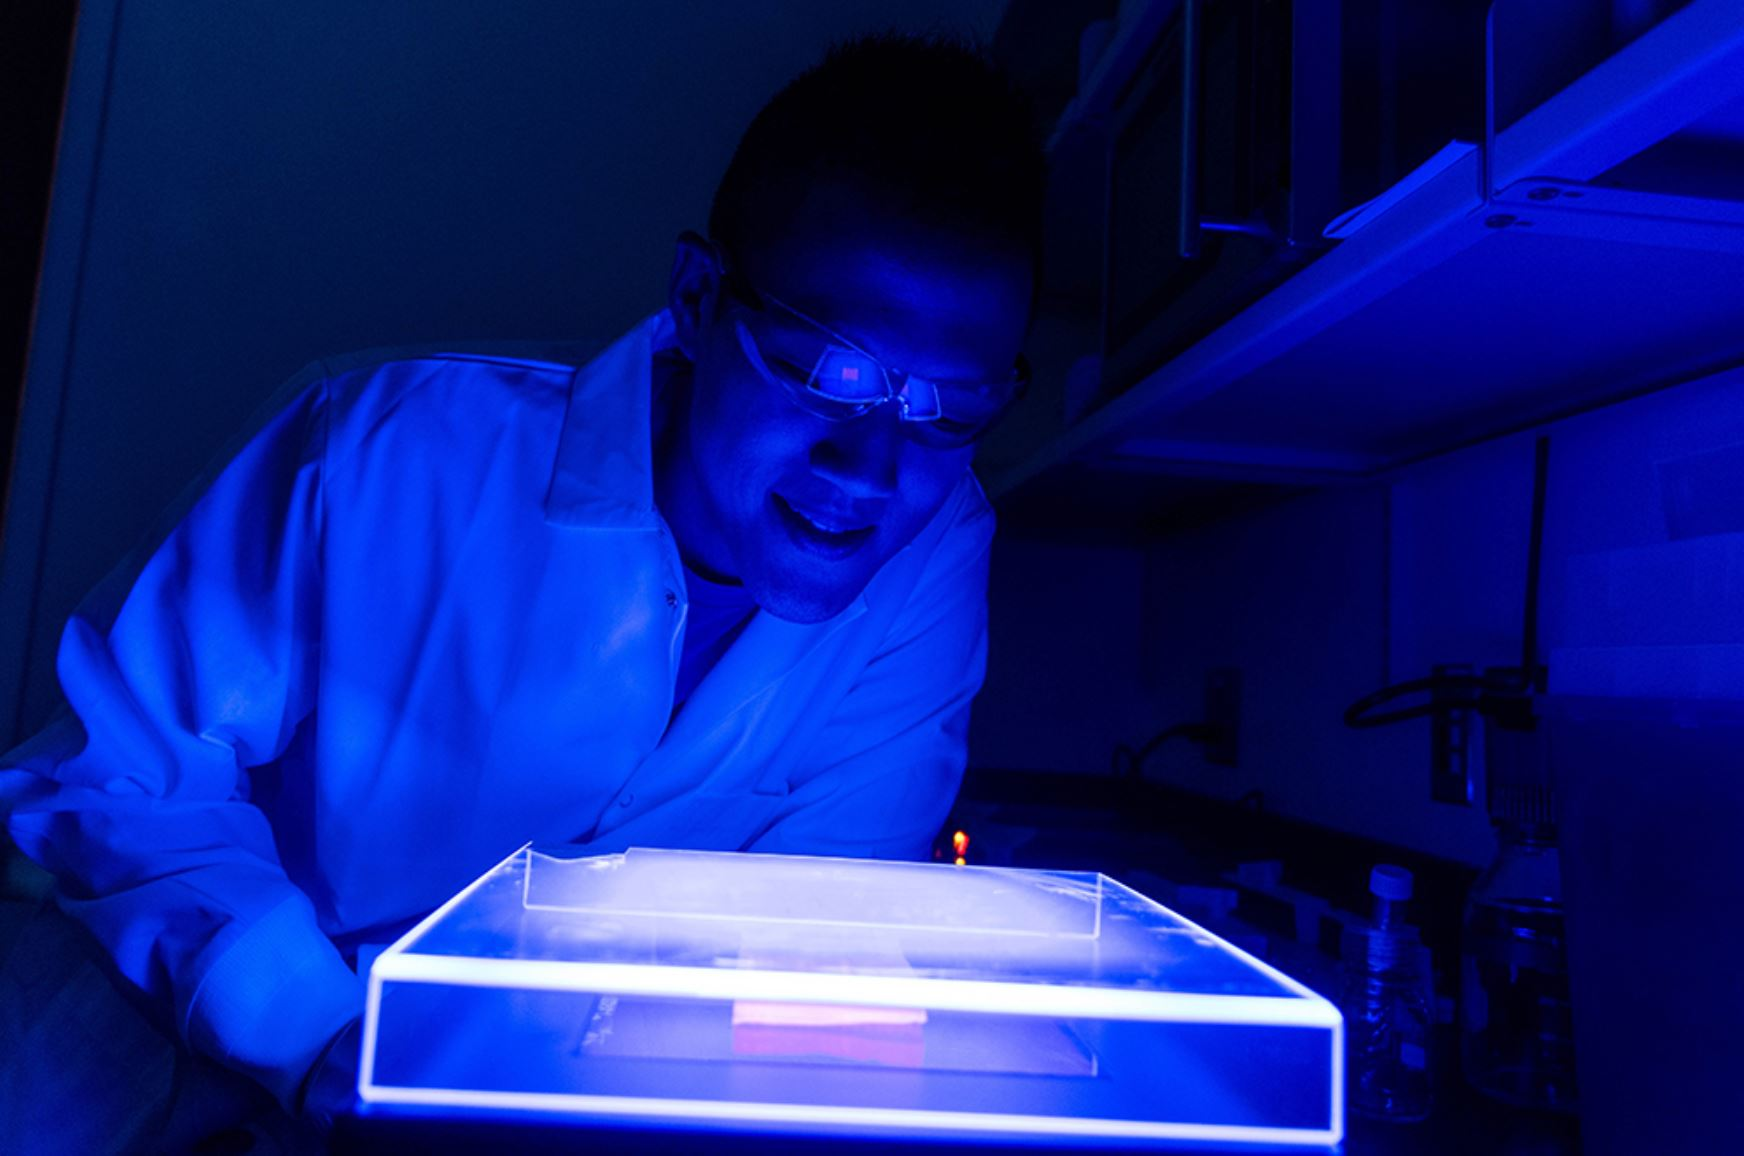 A USF researcher manipulating DNA to engineer E. coli for one carbon conversion - Image Credits: University of South Florida